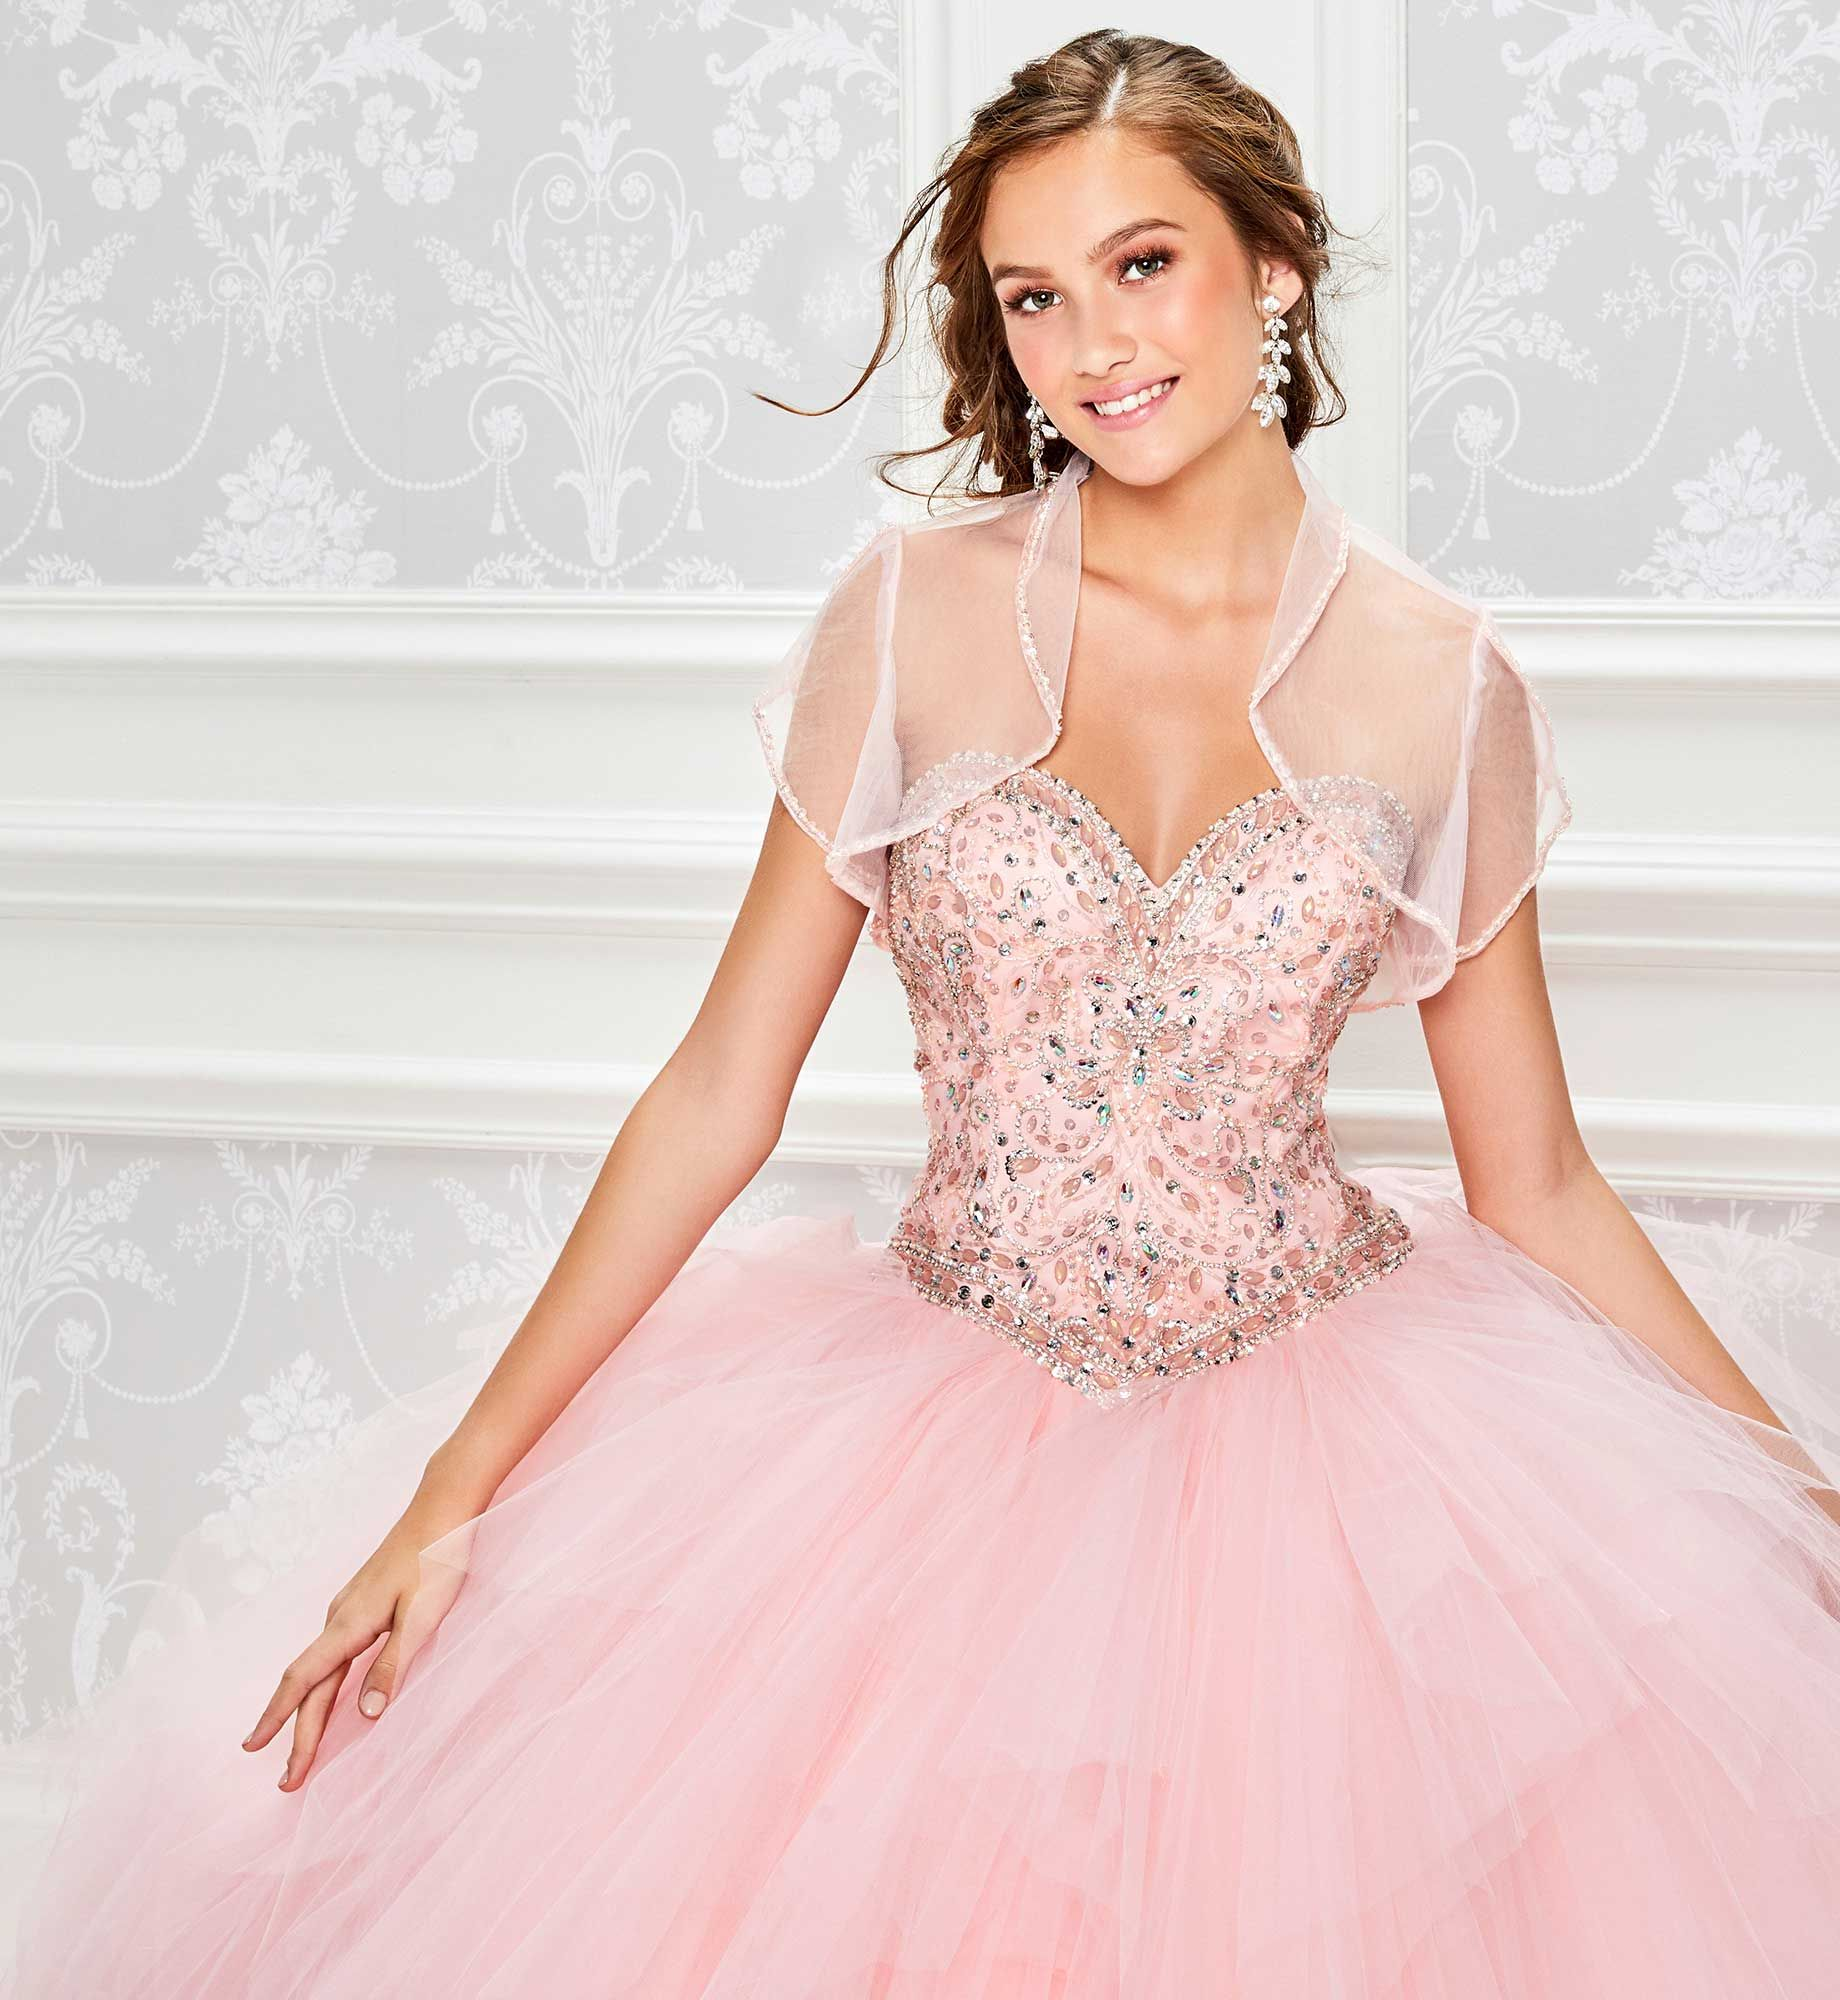 cf68d44464 Princesa by Ariana Vara PR11808 - Strapless tulle and satin ball gown